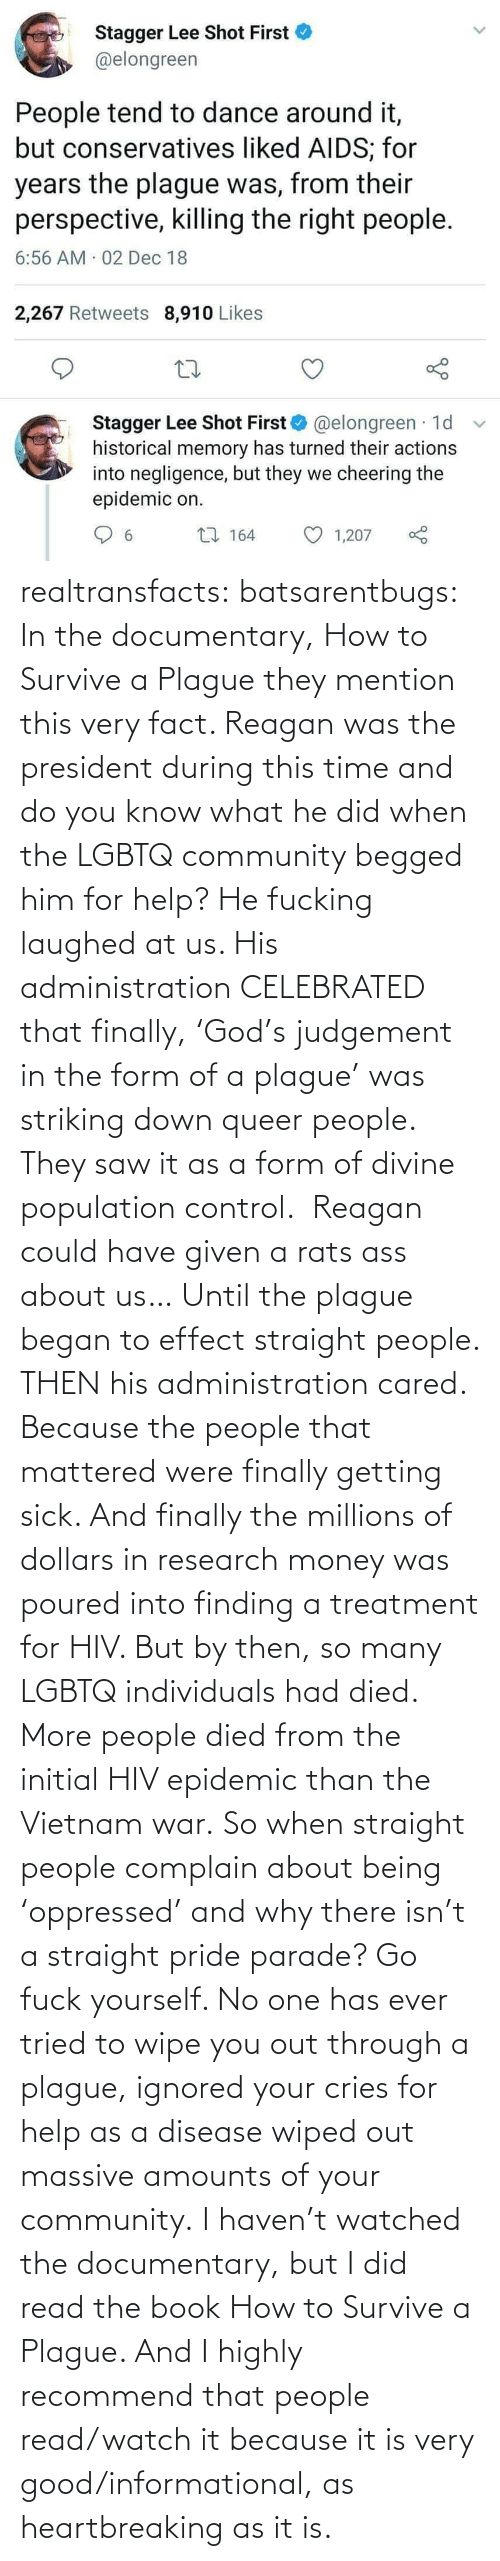 then: Stagger Lee Shot First  @elongreen  People tend to dance around it,  but conservatives liked AIDS; for  years the plague was, from their  perspective, killing the right people.  6:56 AM 02 Dec 18  2,267 Retweets 8,910 Likes  Stagger Lee Shot First O @elongreen · 1d  historical memory has turned their actions  into negligence, but they we cheering the  epidemic on.  27 164  1,207  6. realtransfacts:  batsarentbugs:  In the documentary, How to Survive a Plague they mention this very fact. Reagan was the president during this time and do you know what he did when the LGBTQ community begged him for help? He fucking laughed at us. His administration CELEBRATED that finally, 'God's judgement in the form of a plague' was striking down queer people.  They saw it as a form of divine population control.  Reagan could have given a rats ass about us… Until the plague began to effect straight people. THEN his administration cared. Because the people that mattered were finally getting sick. And finally the millions of dollars in research money was poured into finding a treatment for HIV. But by then, so many LGBTQ individuals had died.  More people died from the initial HIV epidemic than the Vietnam war. So when straight people complain about being 'oppressed' and why there isn't a straight pride parade? Go fuck yourself. No one has ever tried to wipe you out through a plague, ignored your cries for help as a disease wiped out massive amounts of your community.  I haven't watched the documentary, but I did read the book  How to Survive a Plague. And I highly recommend that people read/watch it because it is very good/informational, as heartbreaking as it is.